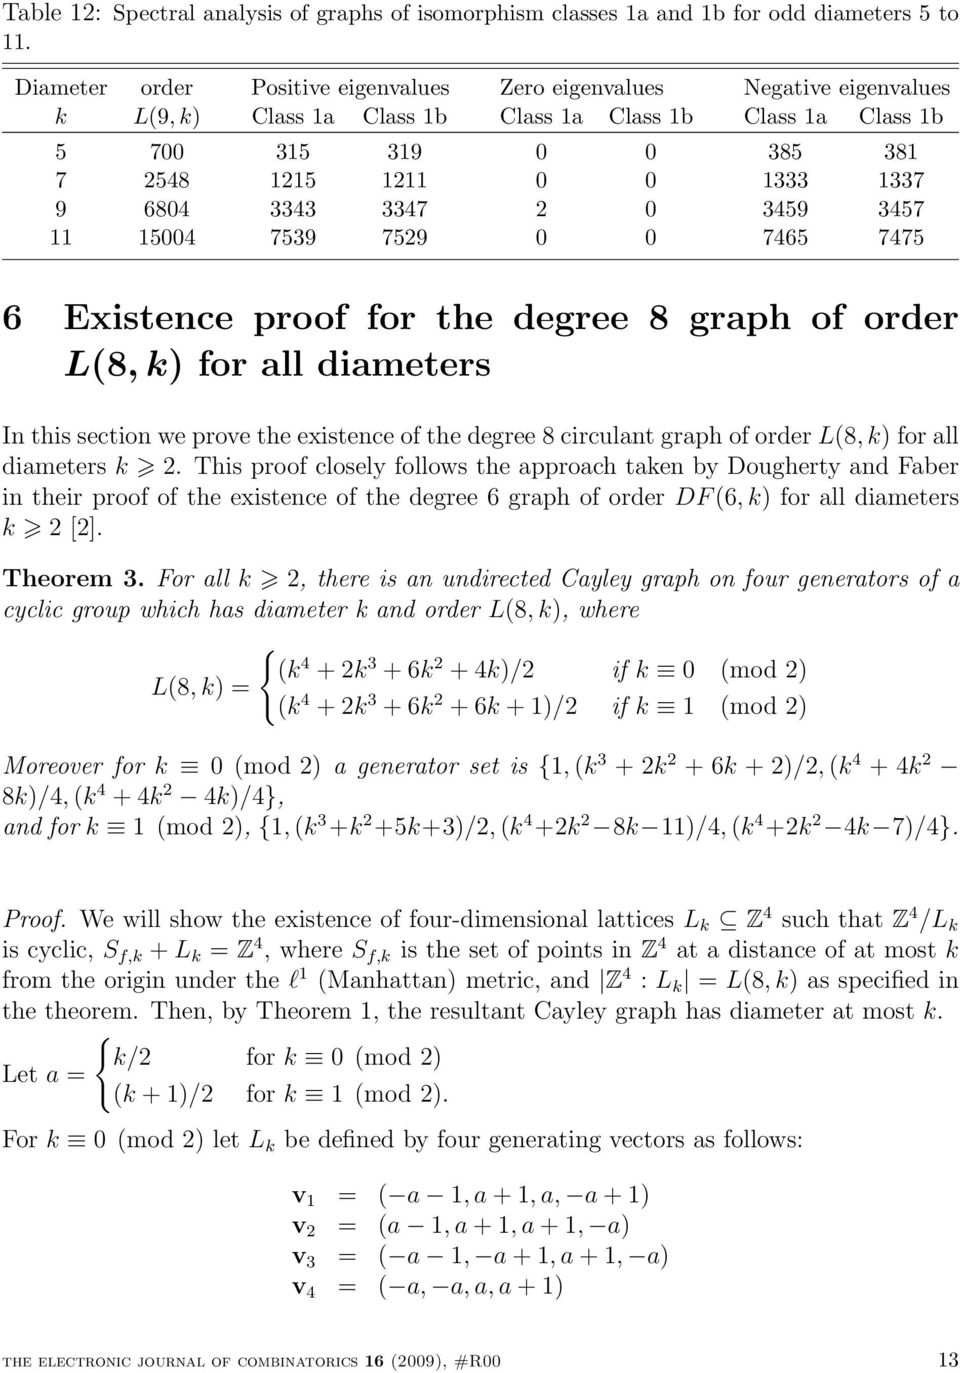 6804 3343 3347 2 0 3459 3457 11 15004 7539 7529 0 0 7465 7475 6 Existence proof for the degree 8 graph of order L(8, k) for all diameters In this section we prove the existence of the degree 8